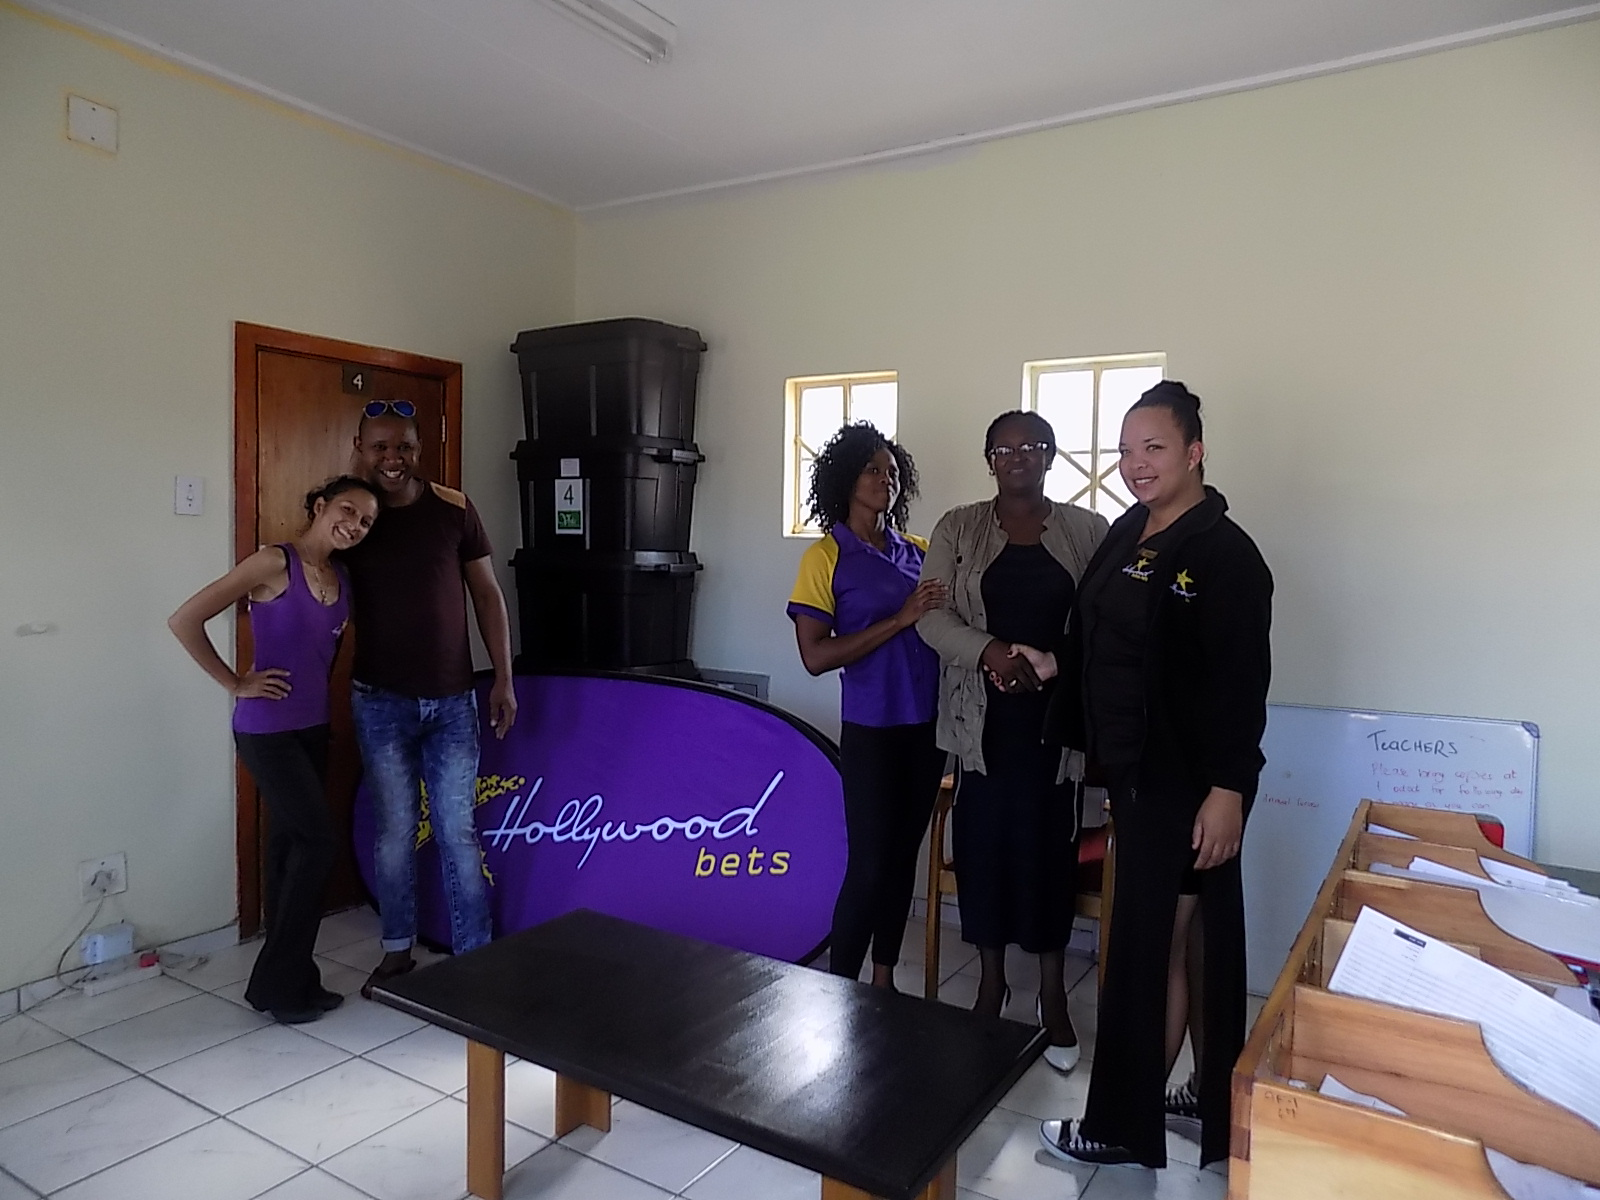 Staff at Kayser Ngxwana Primary School received an office makeover from Hollywoodbets Parliament Street